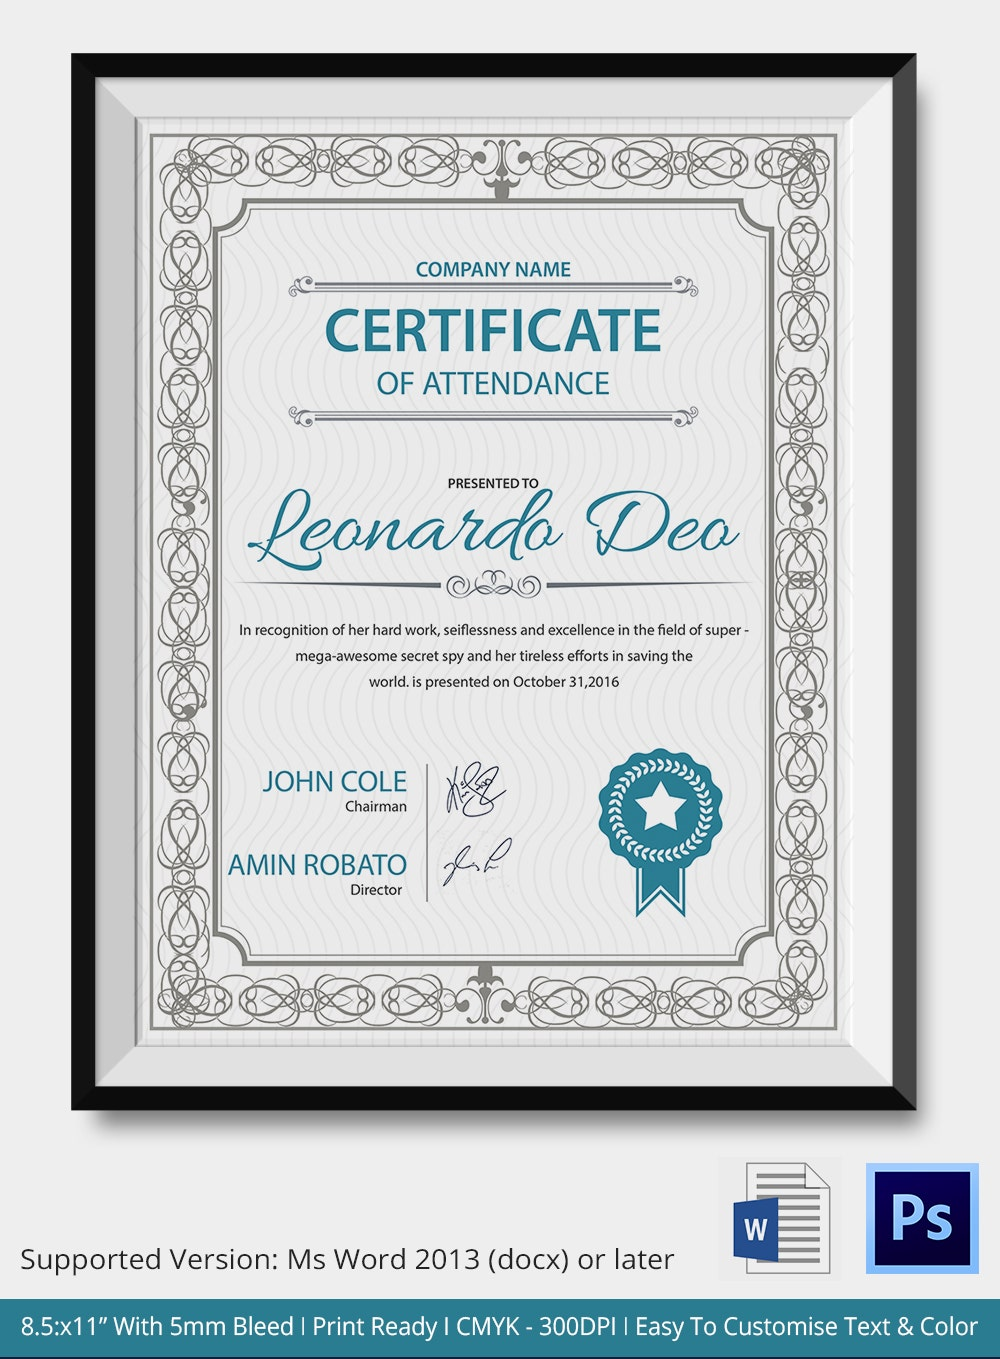 Editable Certificate of Attendance